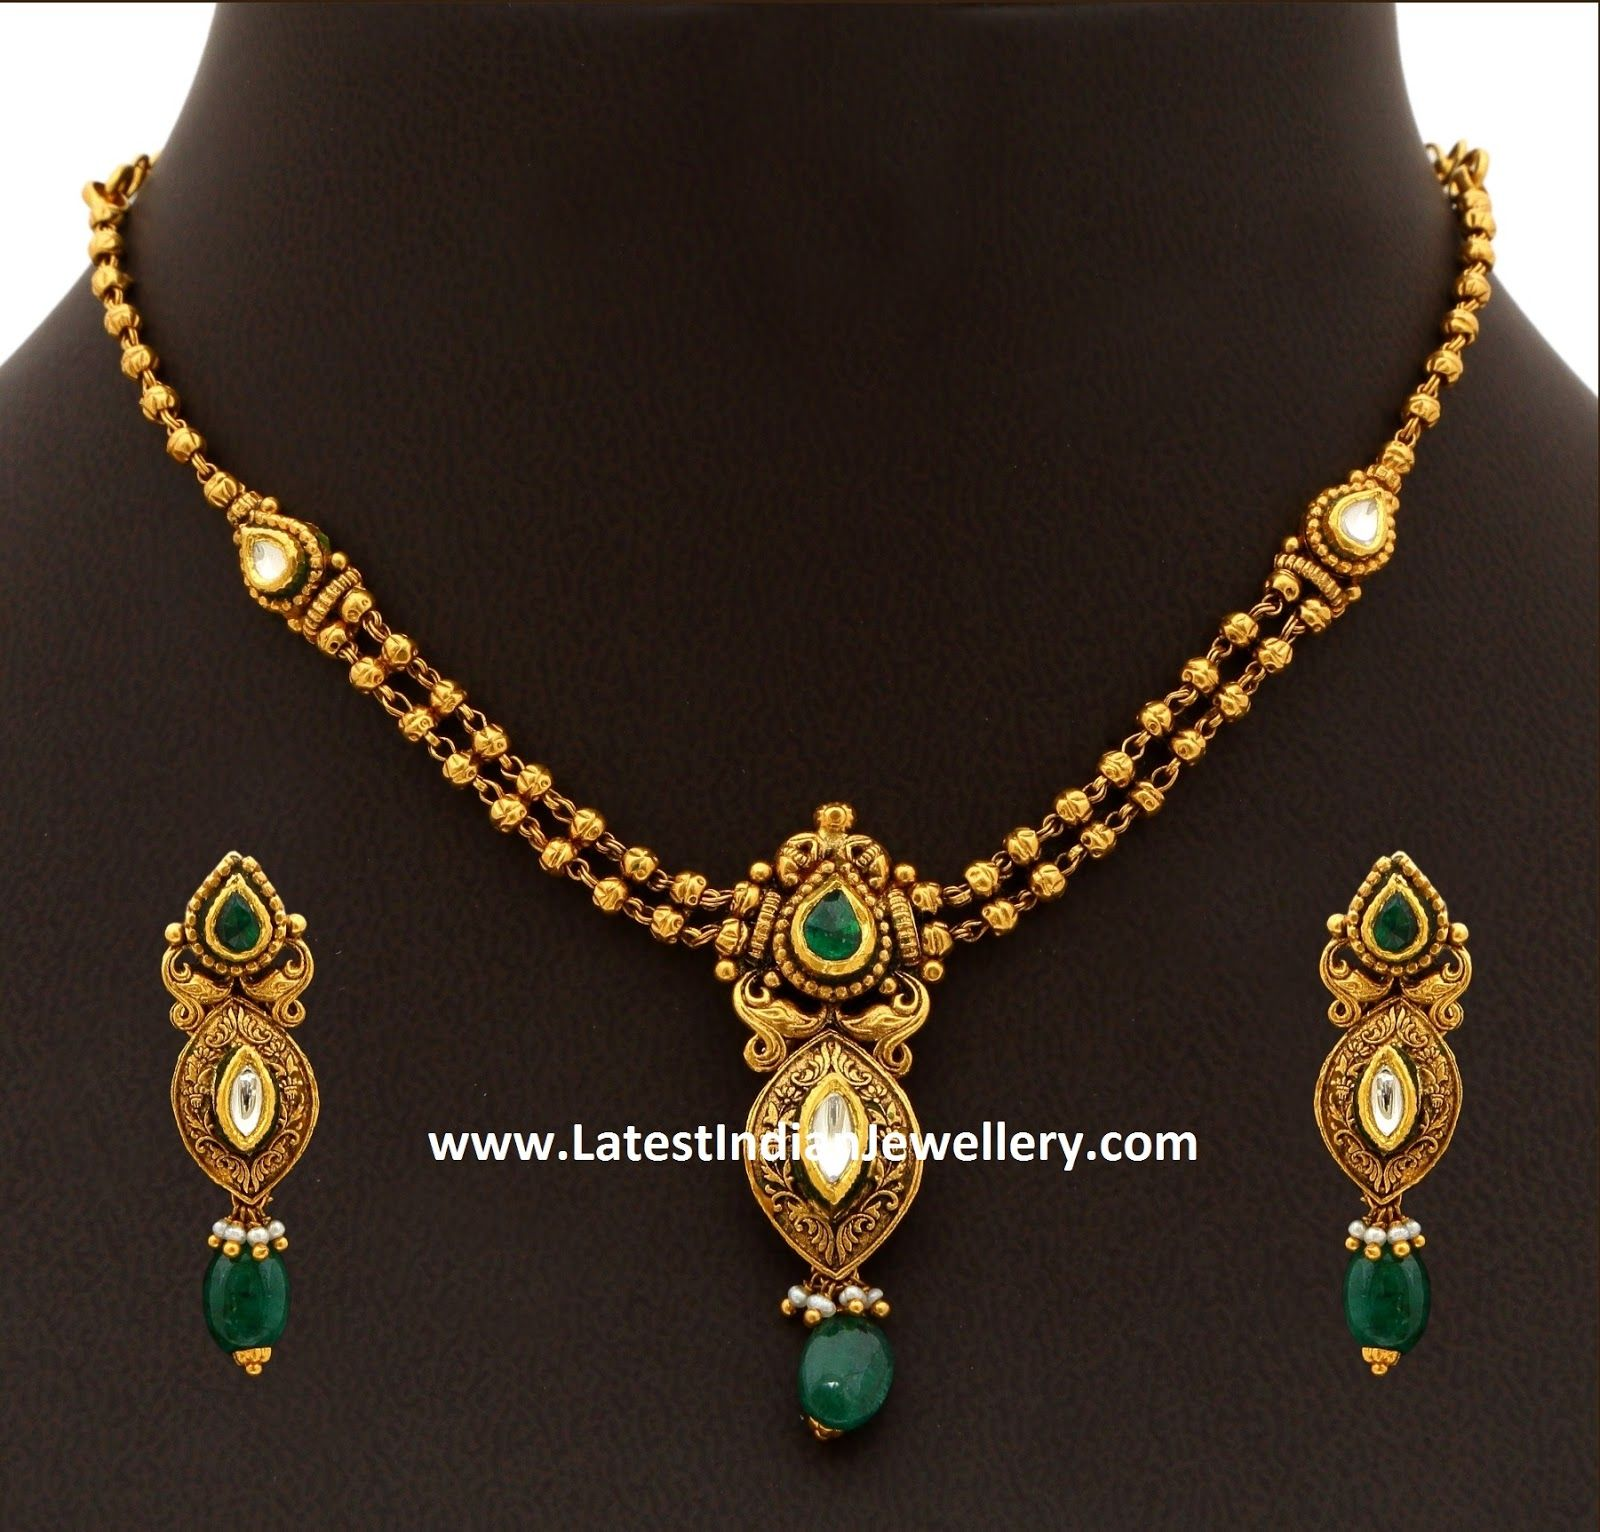 20gms Antique Gold Necklace | Antique gold, Gold necklaces and Gold